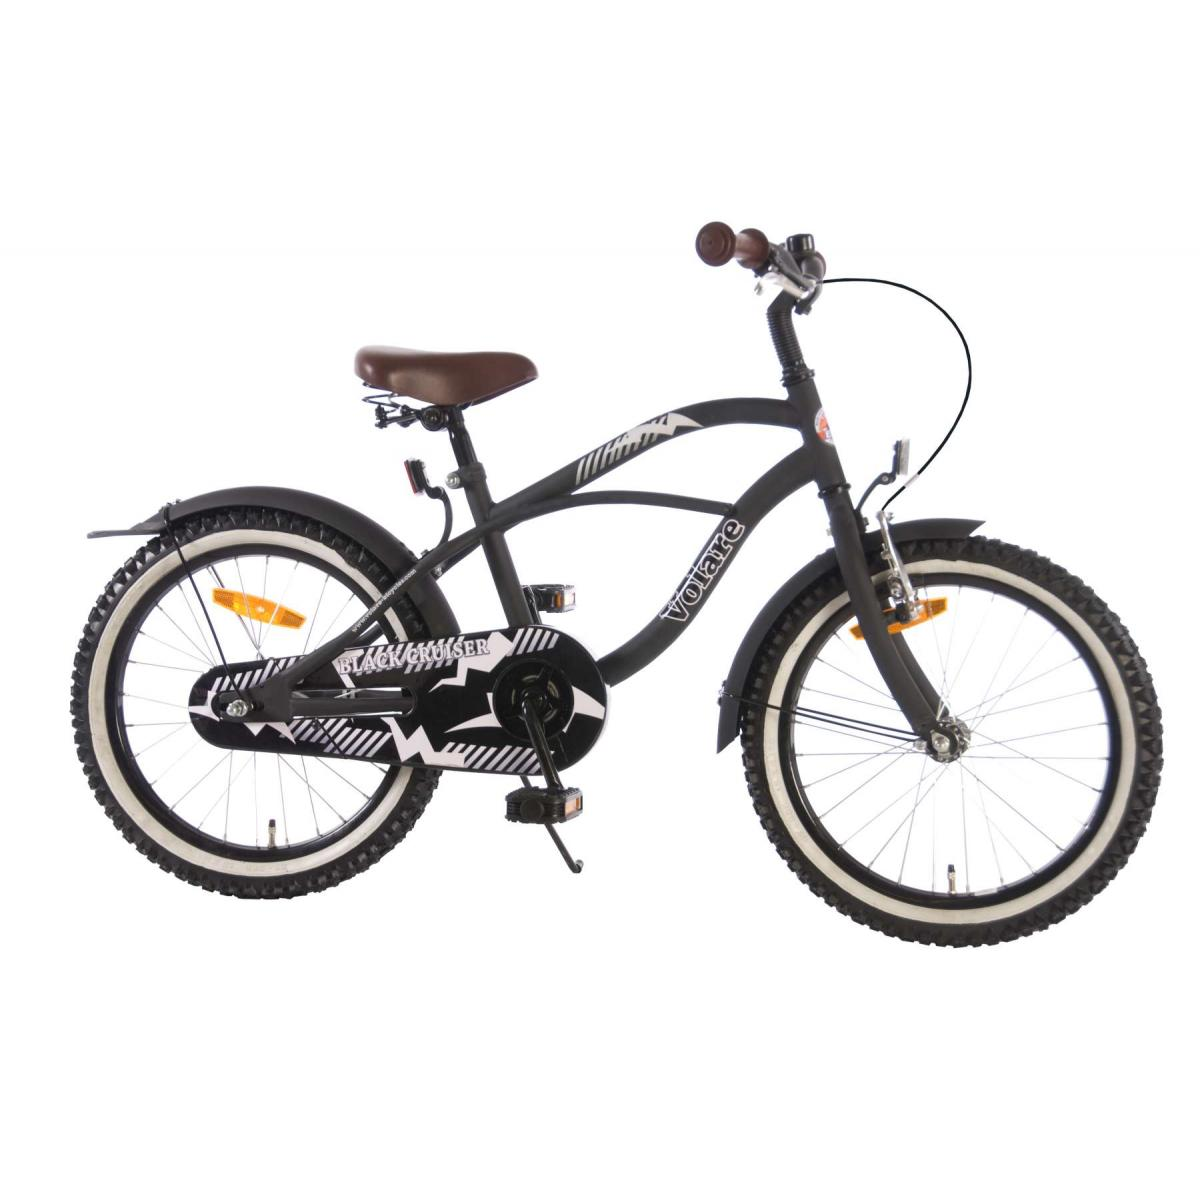 kinderfahrrad volare black cruiser 18 zoll mattschwarz. Black Bedroom Furniture Sets. Home Design Ideas